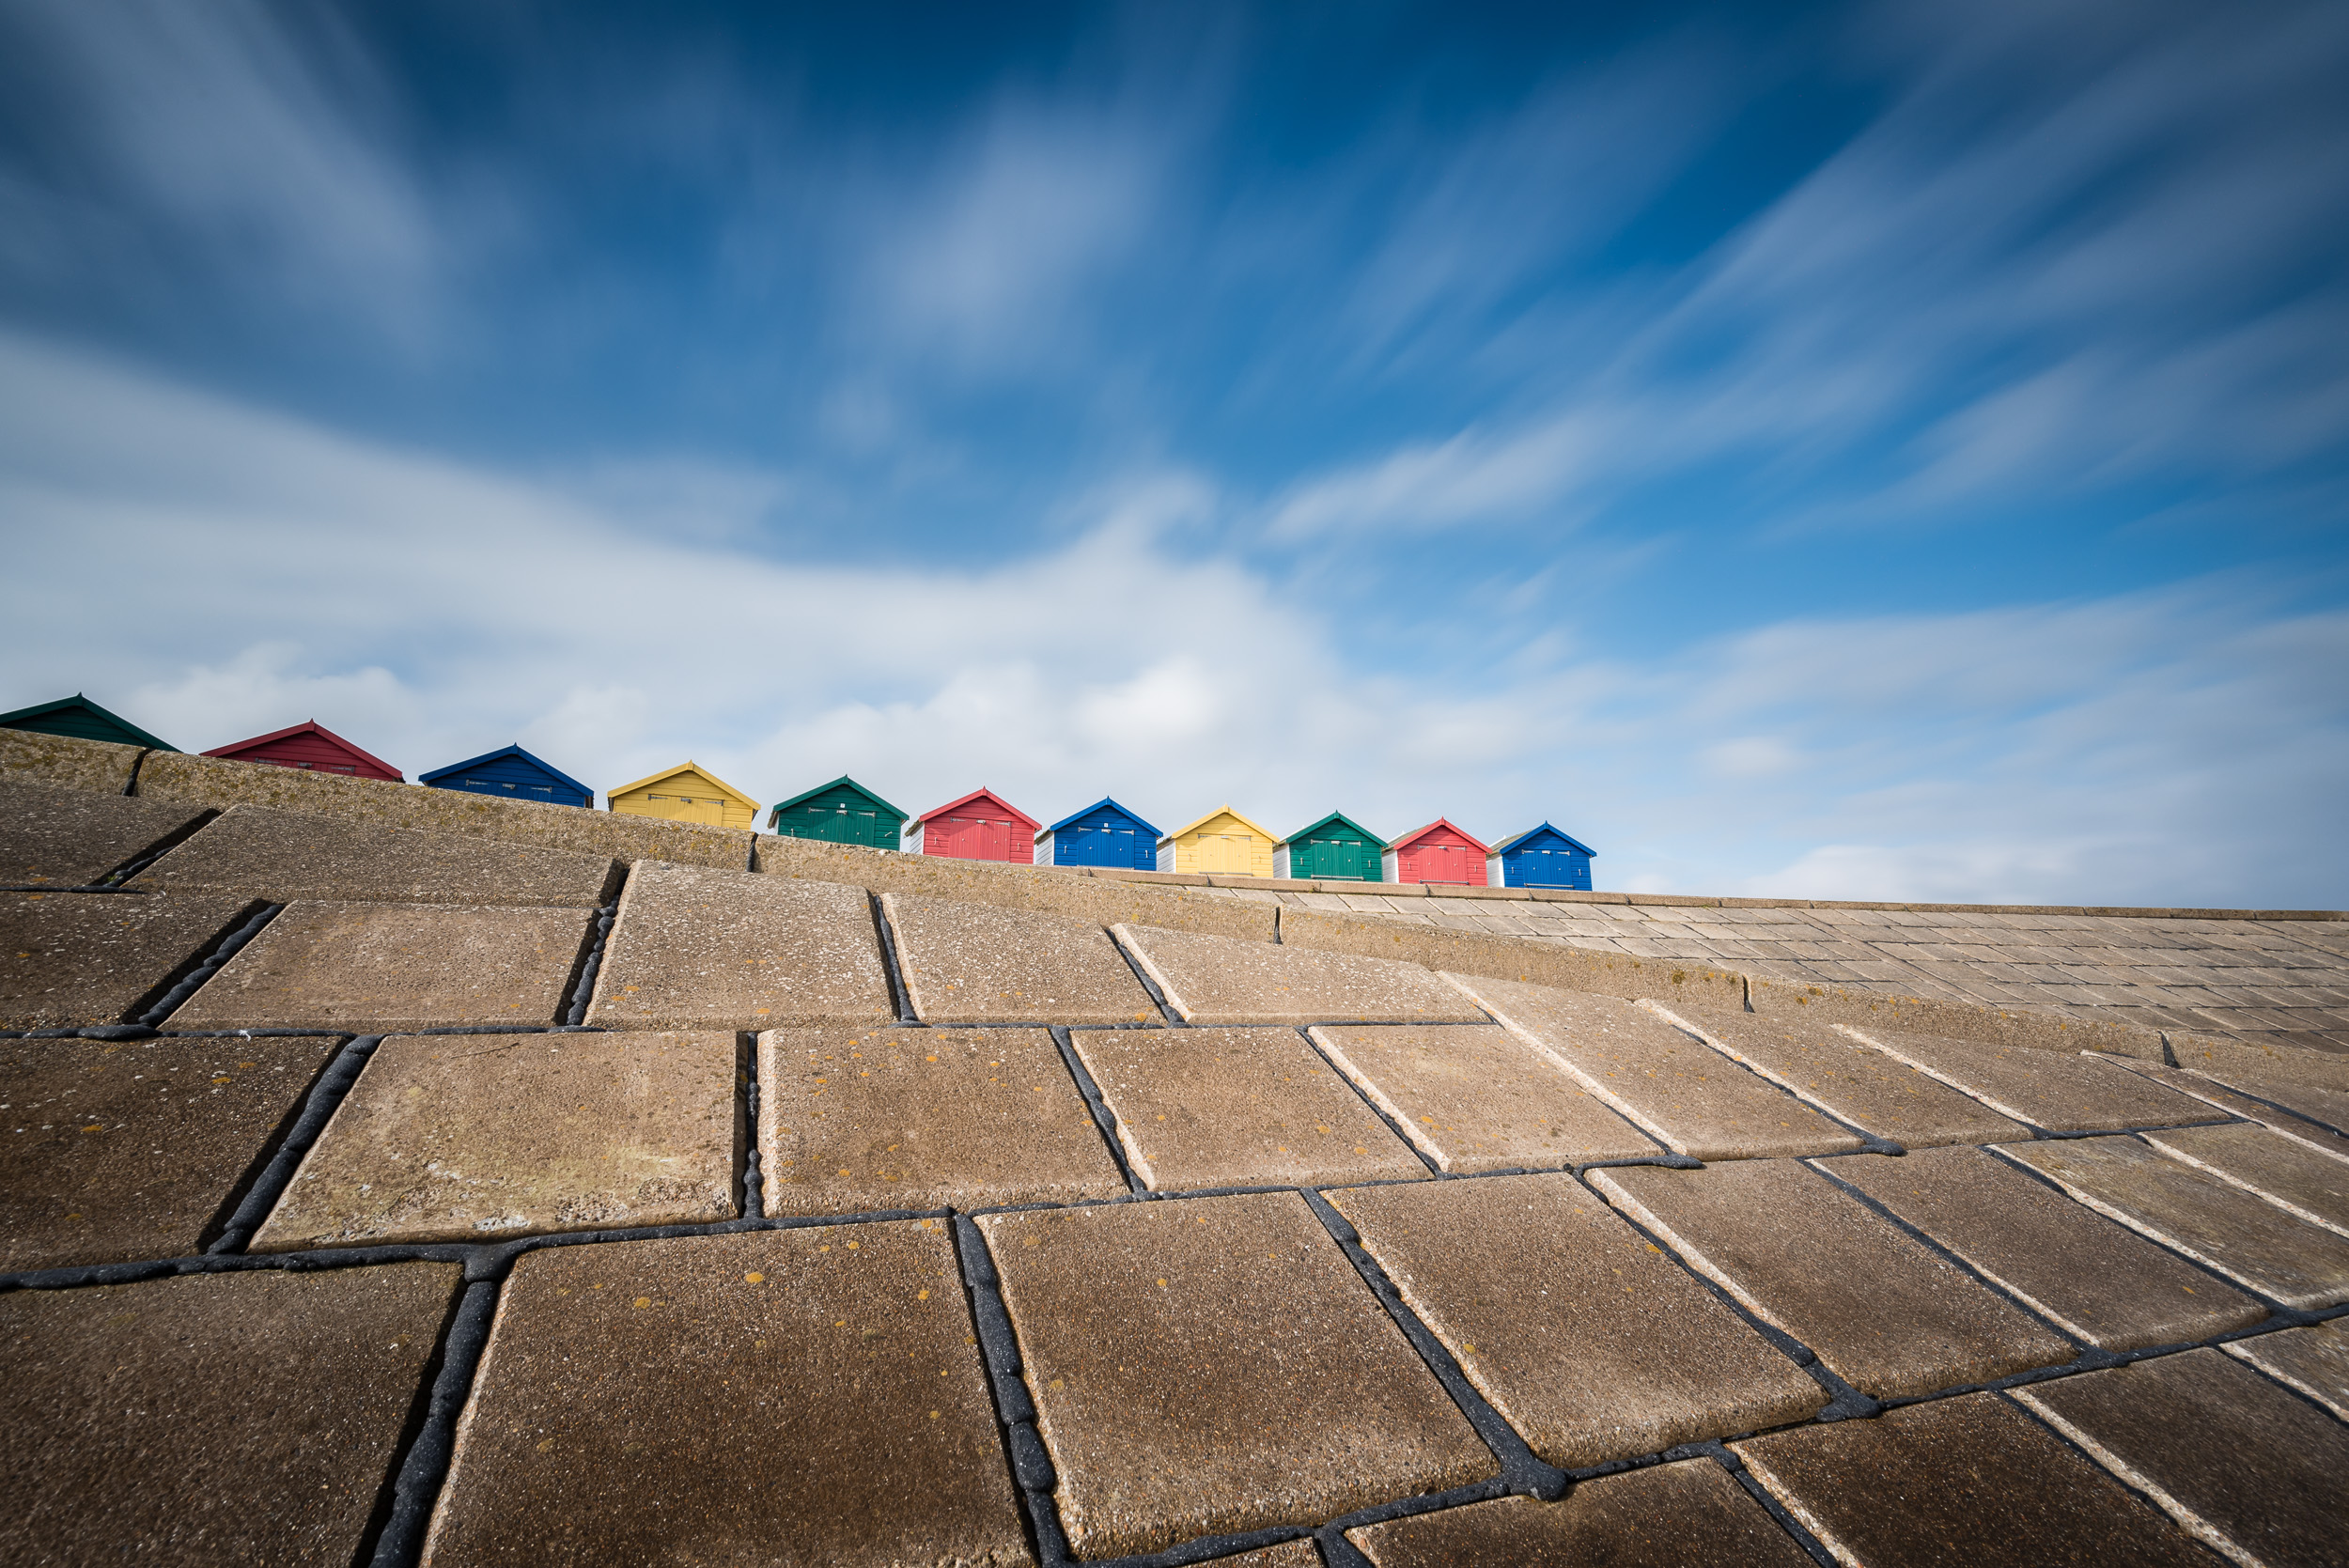 Don't forget to shoot the beach huts.